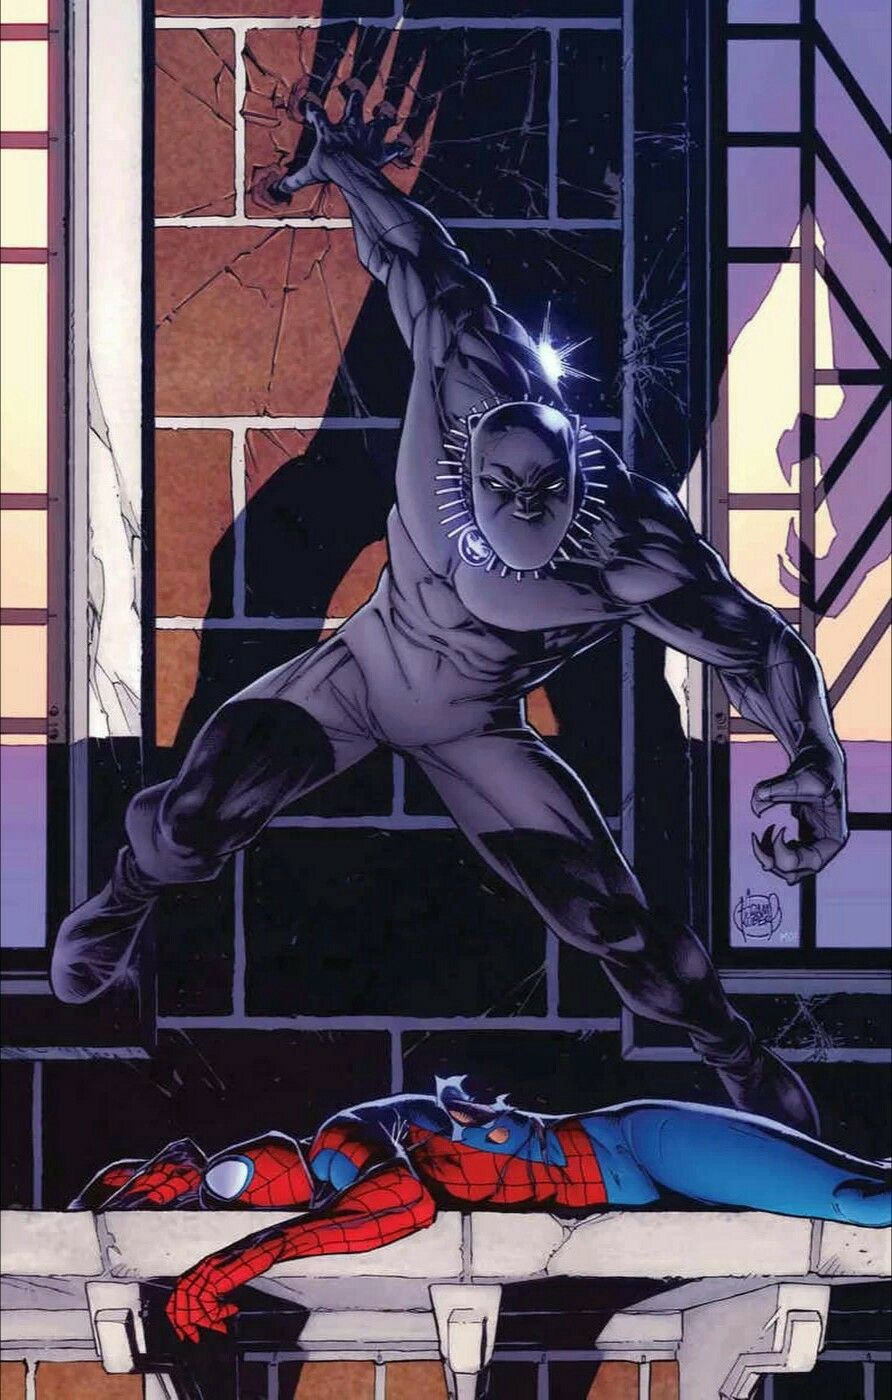 Pin by Willie C on Marvel (With images) Black panther